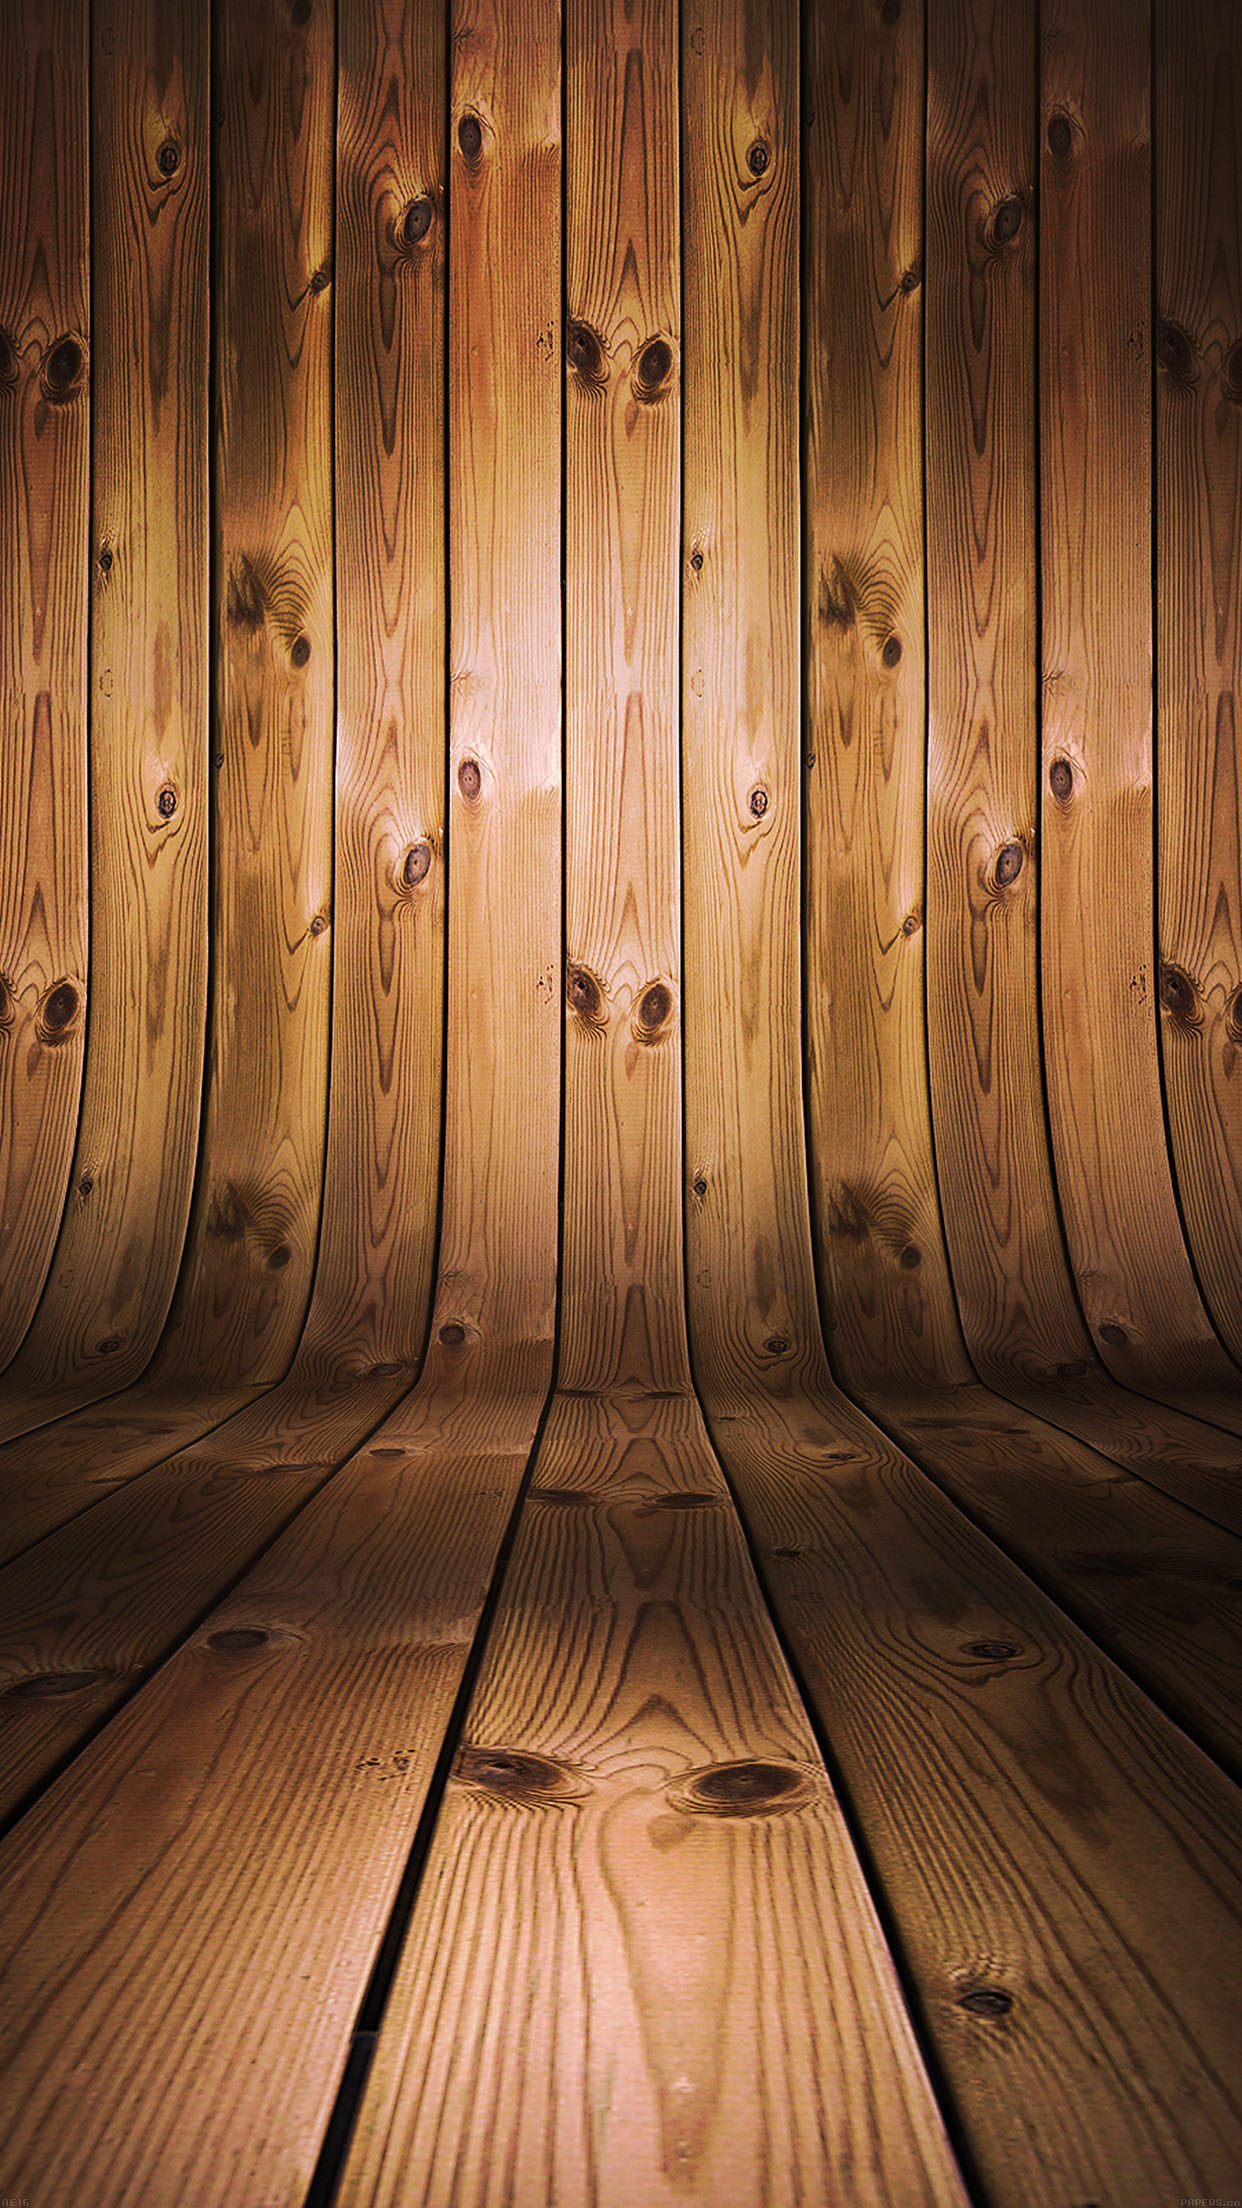 Car Wallpaper For Pc Papers Co Iphone Wallpaper Ae16 Dark Bent Red Wood